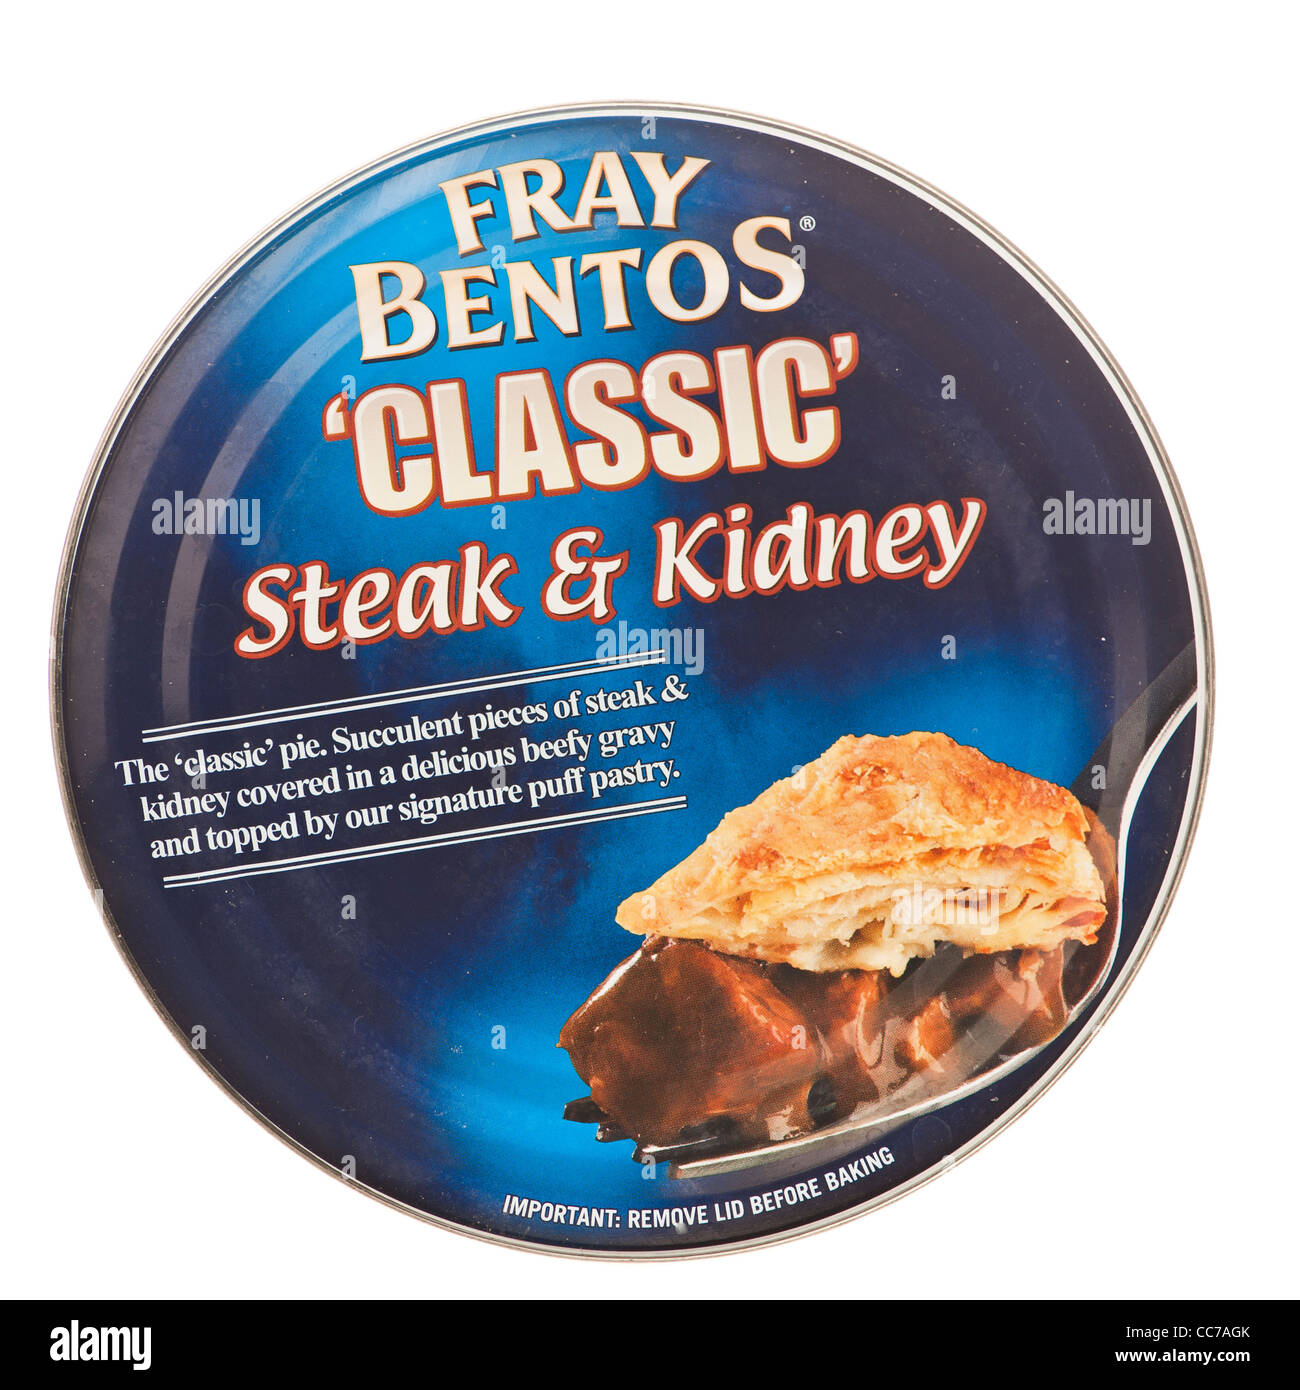 a tin can  Fray Bentos 'classic' steak and kidney pie, UK - Stock Image